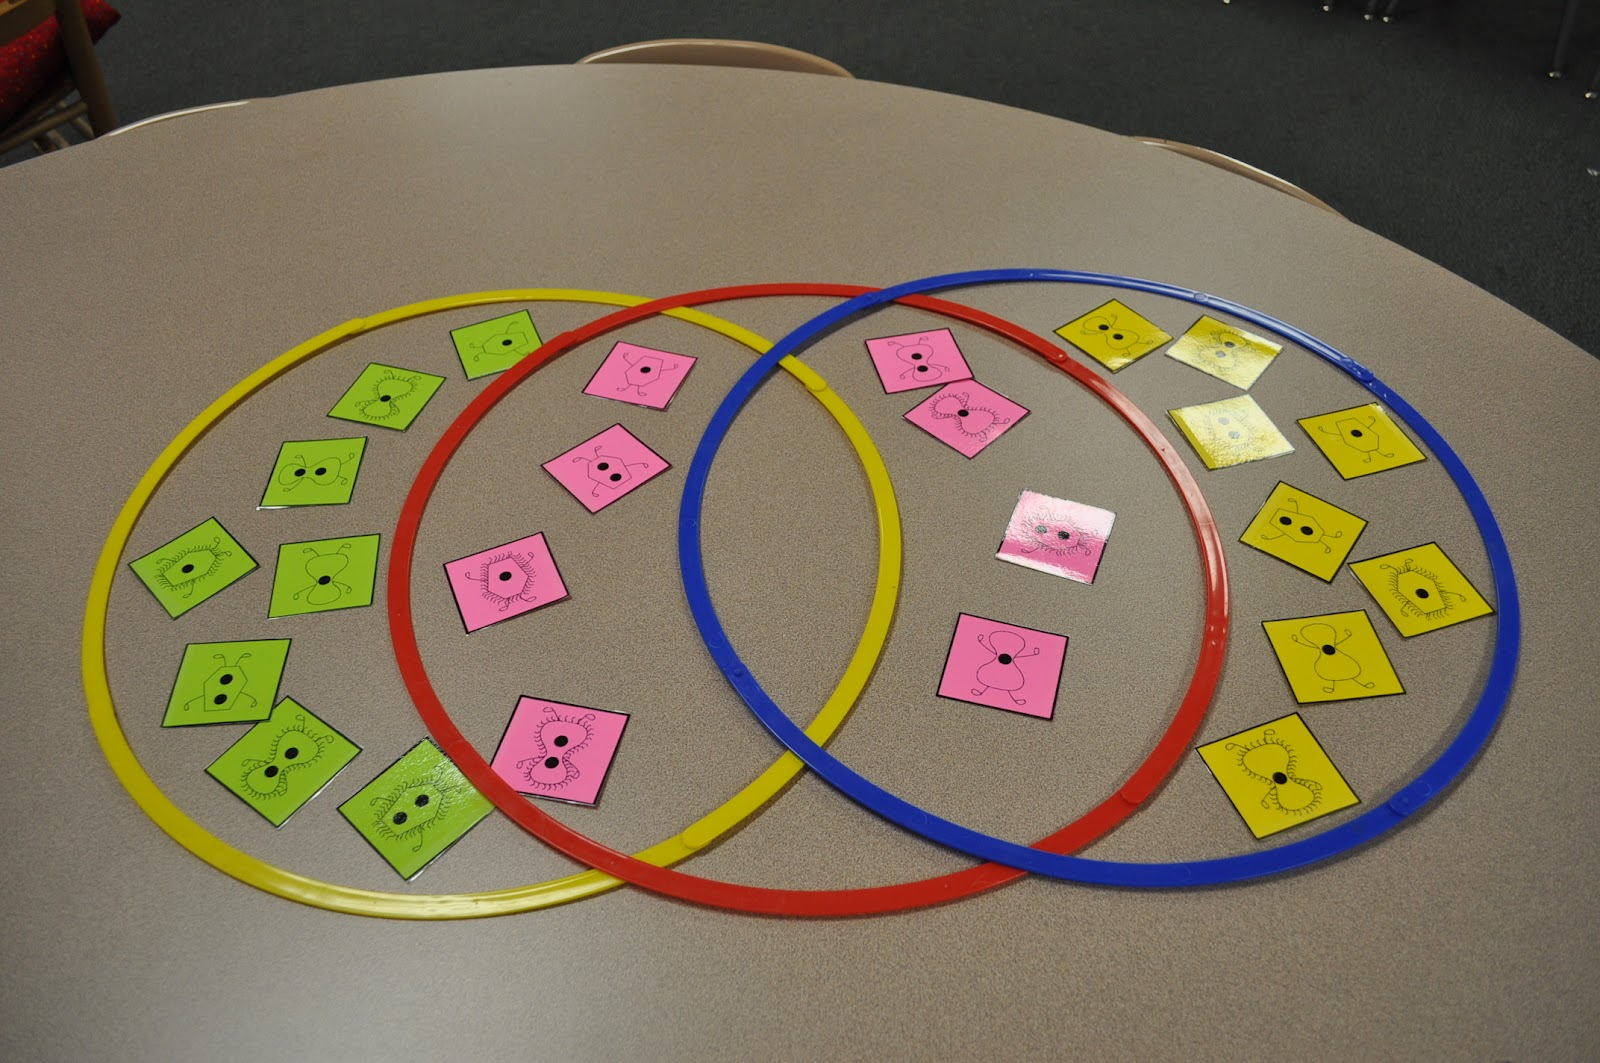 My Second Sense Do You Woozle Venn Diagram For Smartboard 3 Diagrams Copies Of The Woozles Different Colors And Tons Modeling Can Download Here